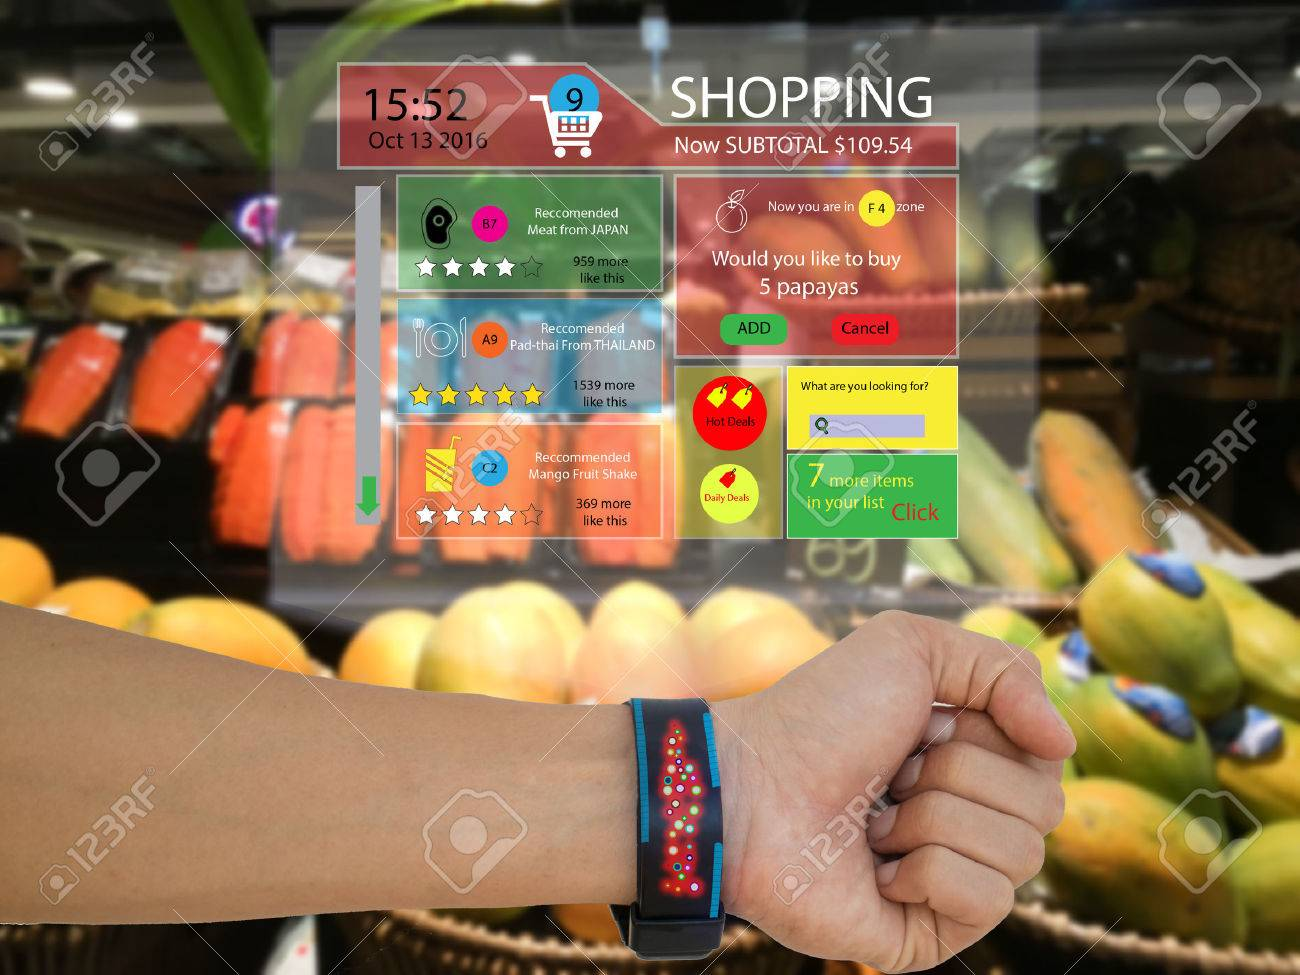 iot,internet of things marketing concept,man wear a smart watch with augmented reality technology to see the data which recommended by retail,the application show subtotal,recommended ,search engine - 78949099